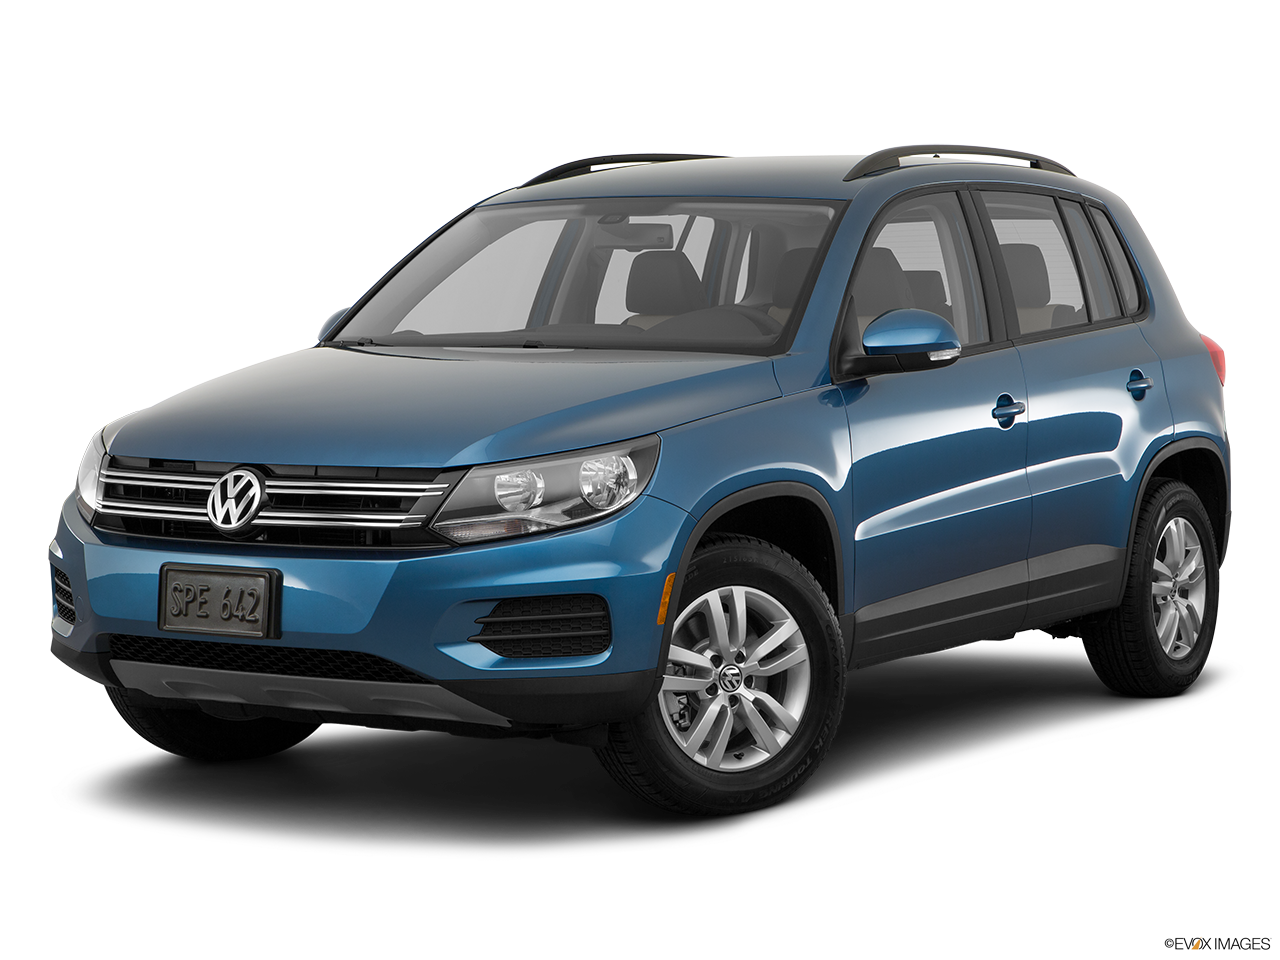 2017 volkswagen tiguan hampton roads casey volkswagen. Black Bedroom Furniture Sets. Home Design Ideas